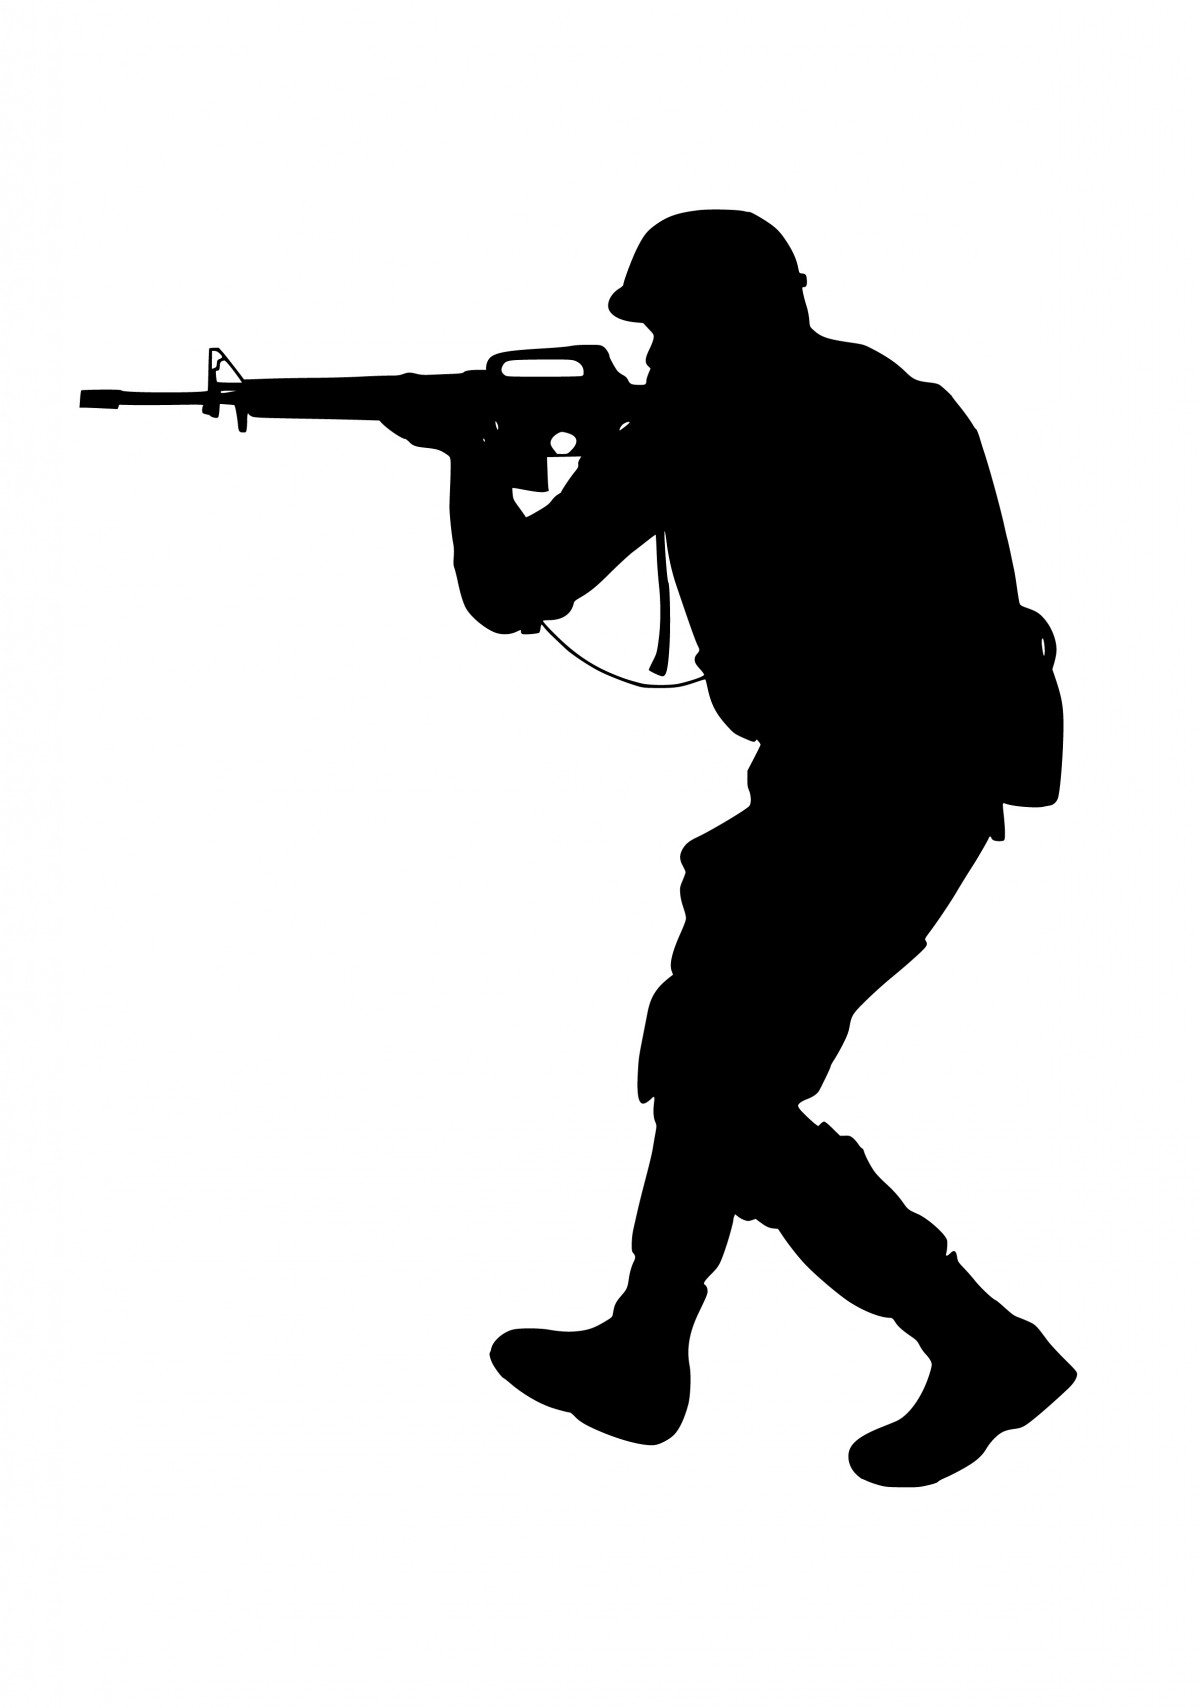 silhouette of soldier soldier silhouette png download 54928000 free of silhouette soldier